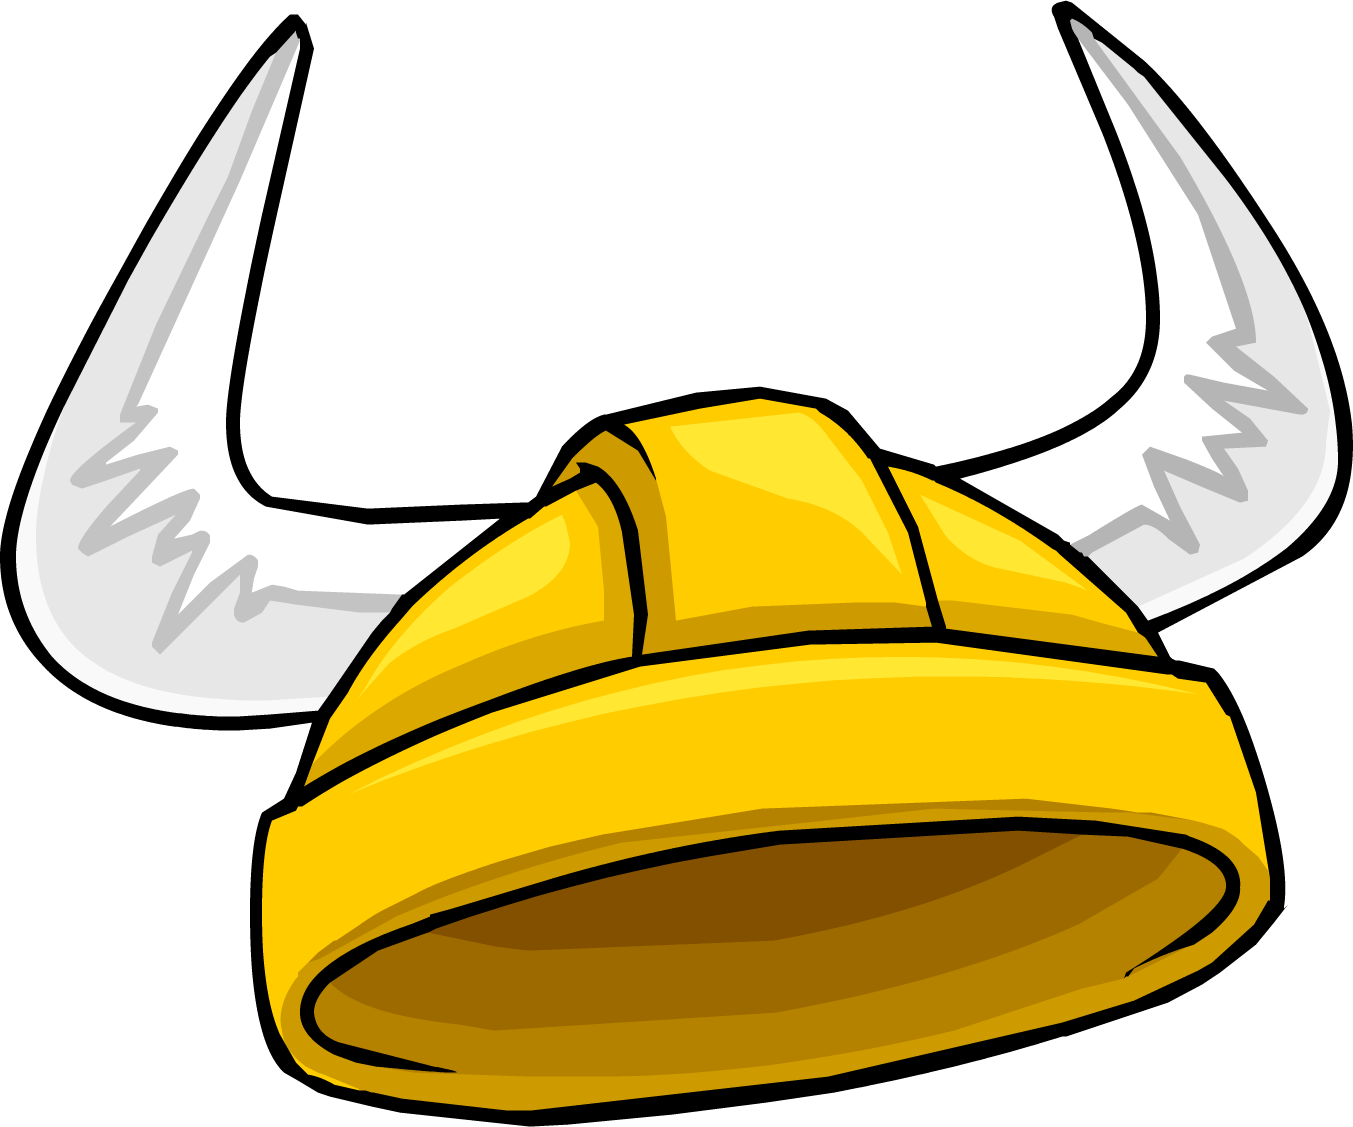 Drawn viking viking hat Hat) Viking Hat) by Wiki